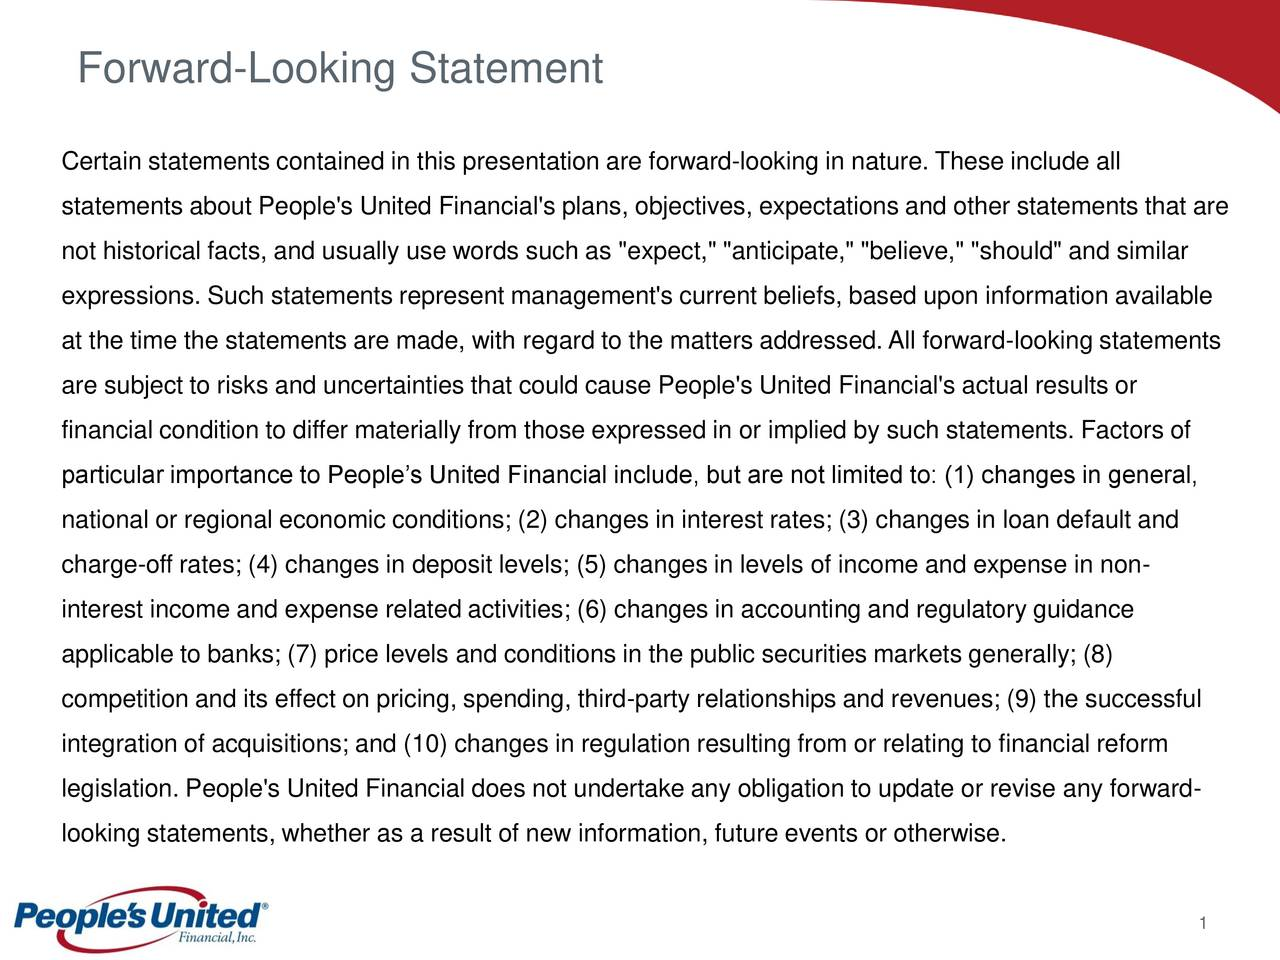 """Certain statements contained in this presentation are forward-looking in nature. These include all statements about People's United Financial's plans, objectives, expectations and other statements that are not historical facts, and usually use words such as """"expect,"""" """"anticipate,"""" """"believe,"""" """"should"""" and similar expressions. Such statements represent management's current beliefs, based upon information available at the time the statements are made, with regard to the matters addressed.All forward-looking statements are subject to risks and uncertainties that could cause People's United Financial's actual results or financial condition to differ materially from those expressed in or implied by such statements. Factors of particular importance to Peoples United Financial include, but are not limited to: (1) changes in general, national or regional economic conditions; (2) changes in interest rates; (3) changes in loan default and charge-off rates; (4) changes in deposit levels; (5) changes in levels of income and expense in non- interest income and expense related activities; (6) changes in accounting and regulatory guidance applicable to banks; (7) price levels and conditions in the public securities markets generally; (8) competition and its effect on pricing, spending, third-party relationships and revenues; (9) the successful integration of acquisitions; and (10) changes in regulation resulting from or relating to financial reform legislation. People's United Financial does not undertake any obligation to update or revise any forward- looking statements, whether as a result of new information, future events or otherwise. 1"""